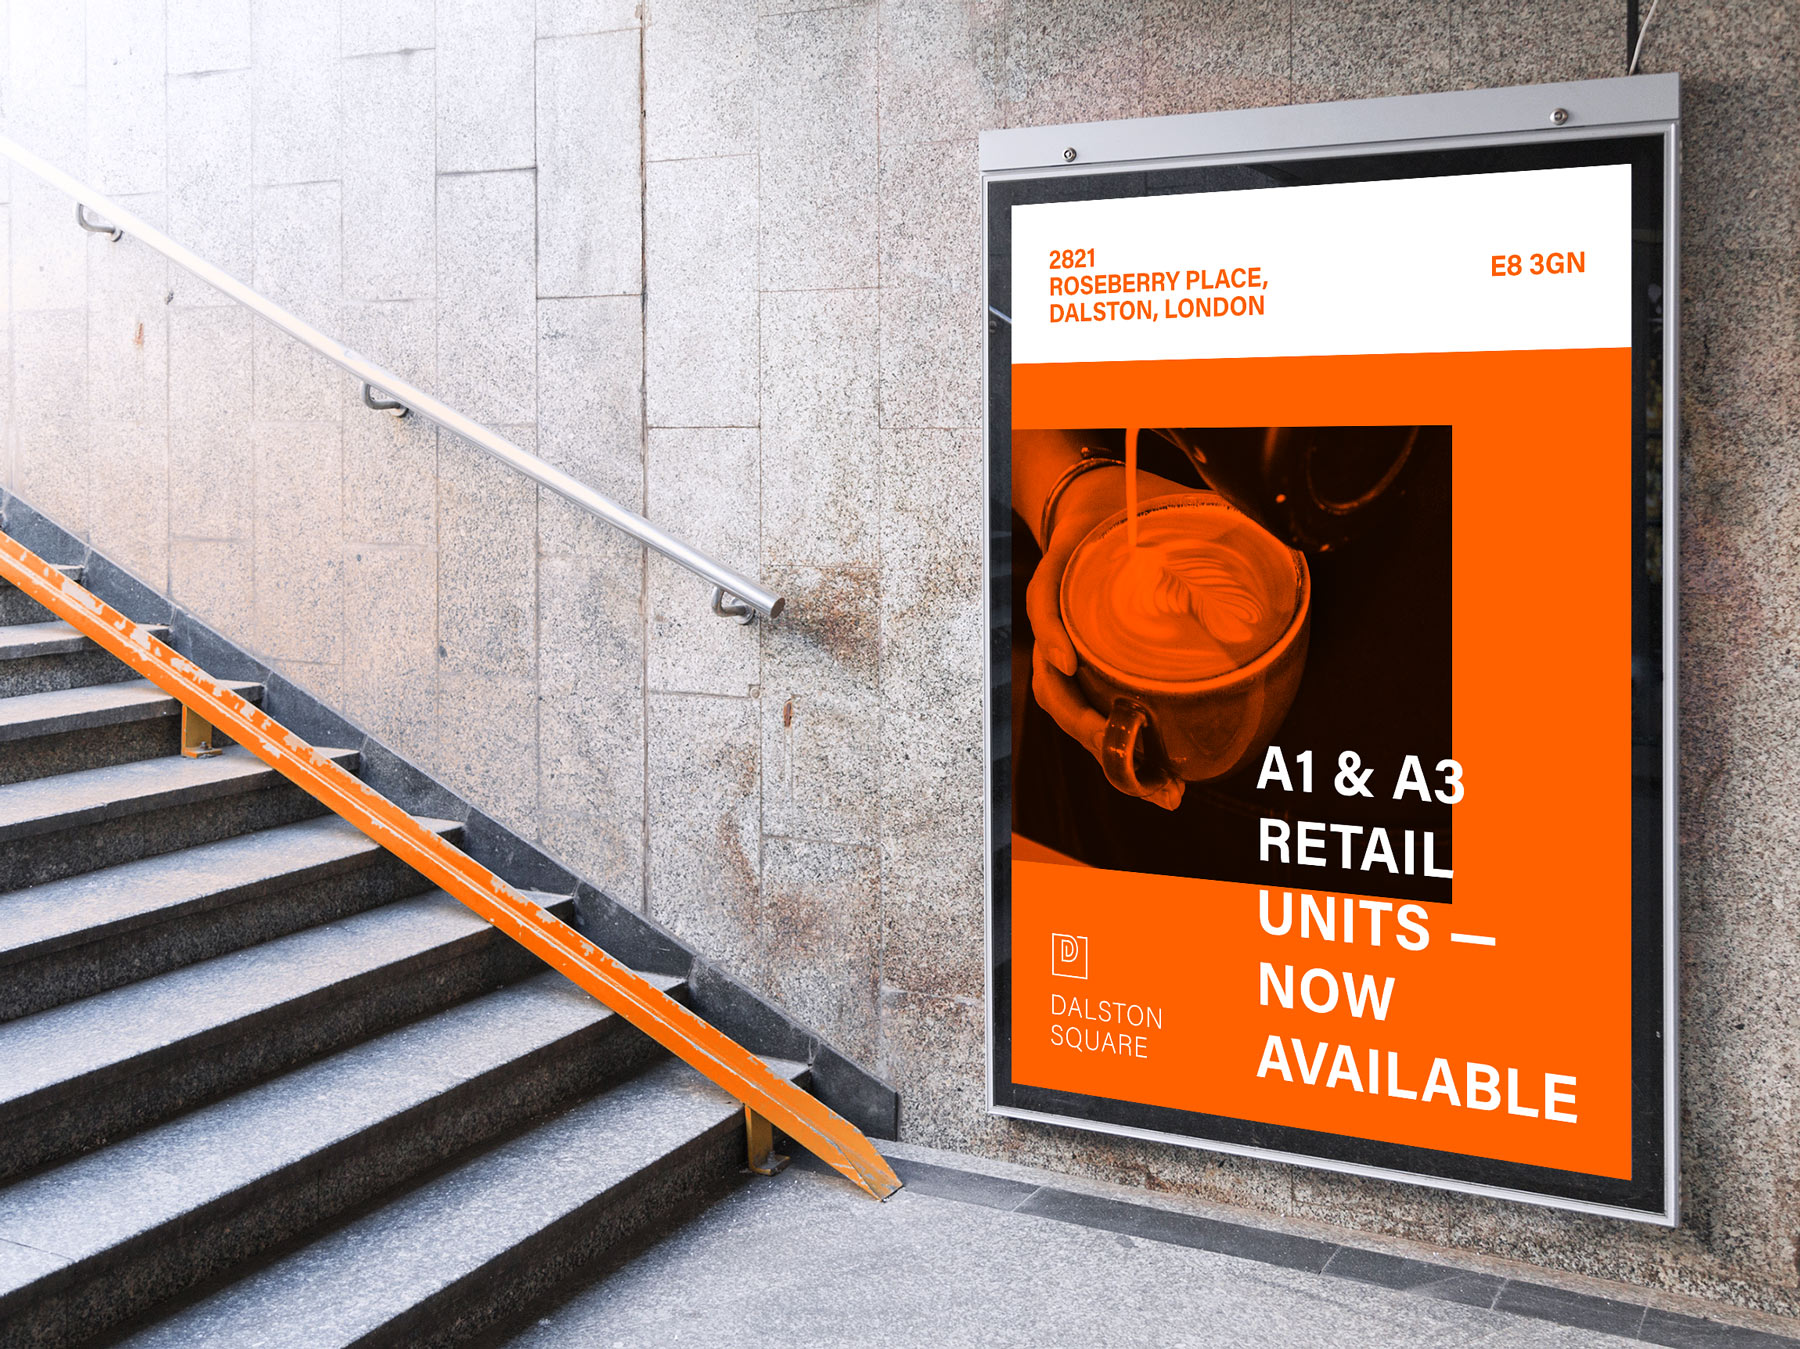 dalston-square-underground_poster-by-ALSO-agency-00.jpg